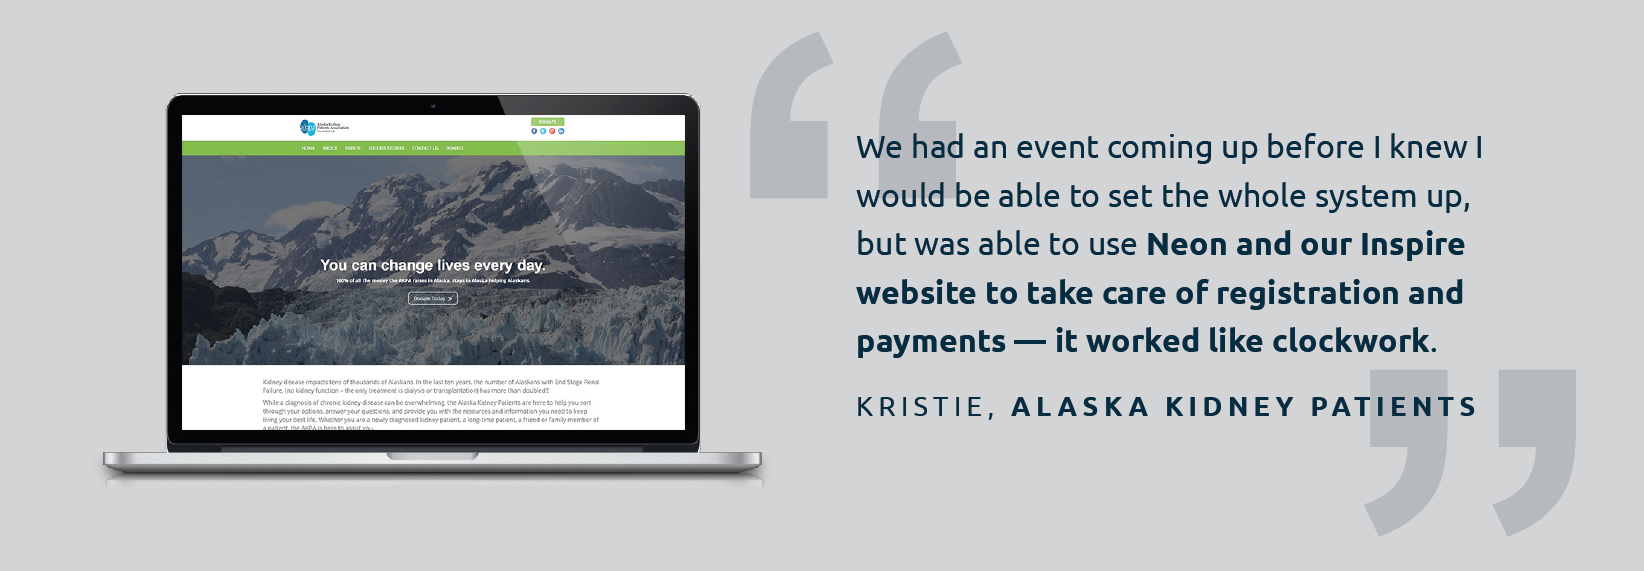 Alaska Kidney Patients used Inspire and Neon to take care of event registrations and payments — and it worked like clockwork.